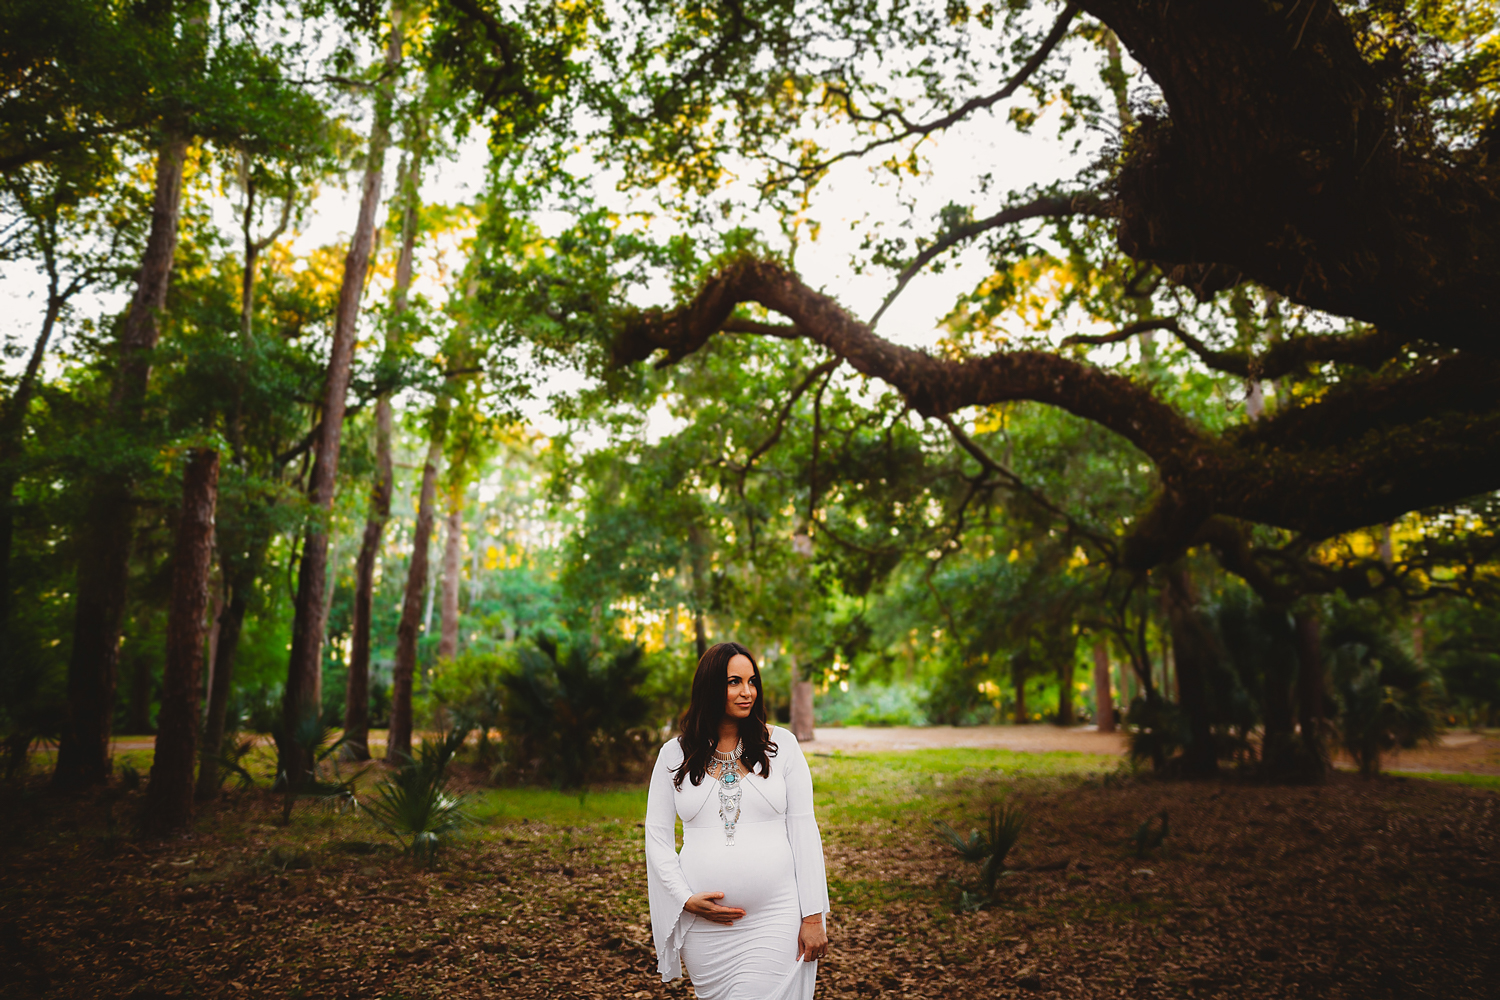 epic maternity photos, maternity photographer of pinellas county fl